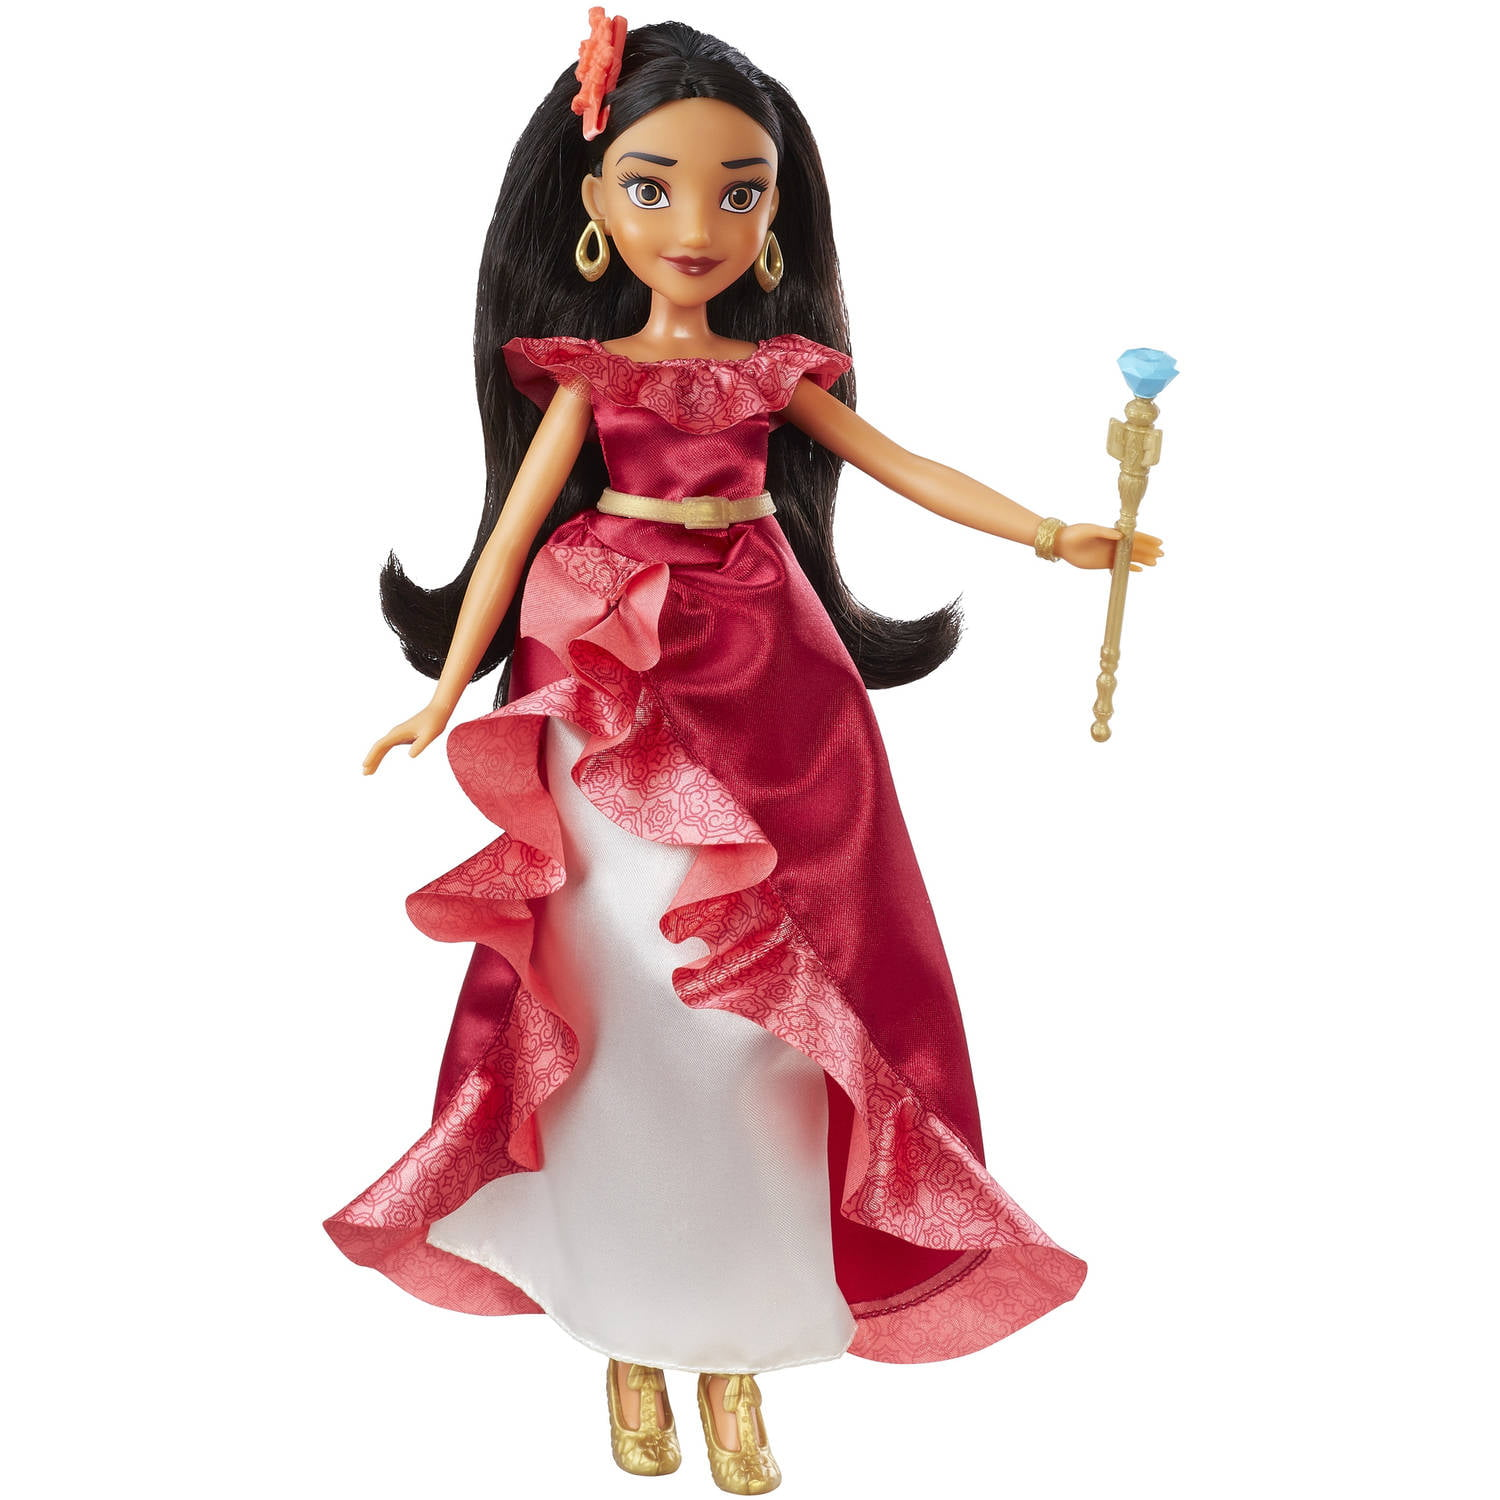 Disney Elena of Avalor Adventure Dress Doll by Hasbro